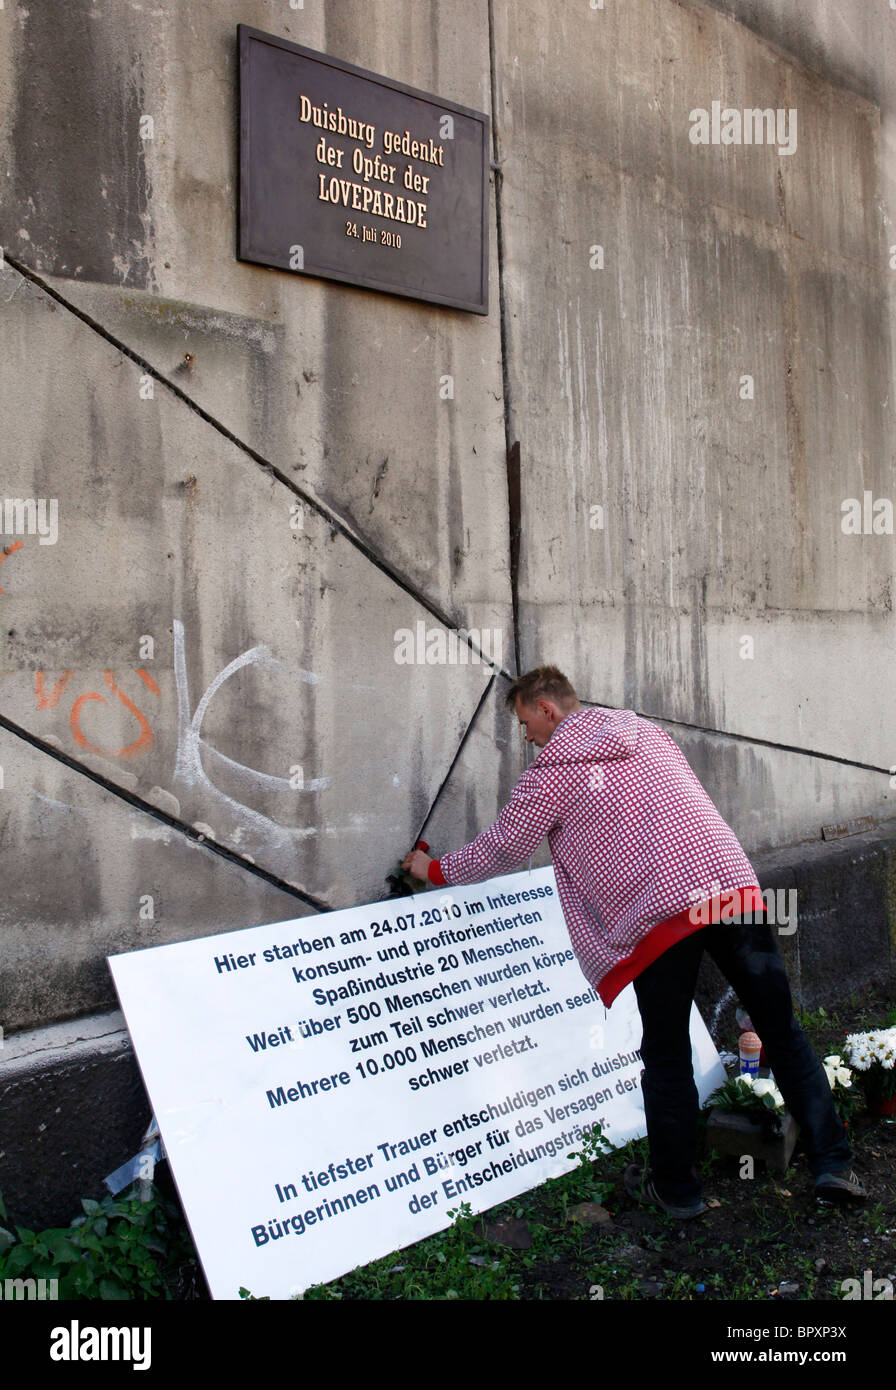 Duisburg, Germany, Loveparade 2010: site where a tragedy happened when on July 24th 2010 21 people died and hundreds - Stock Image